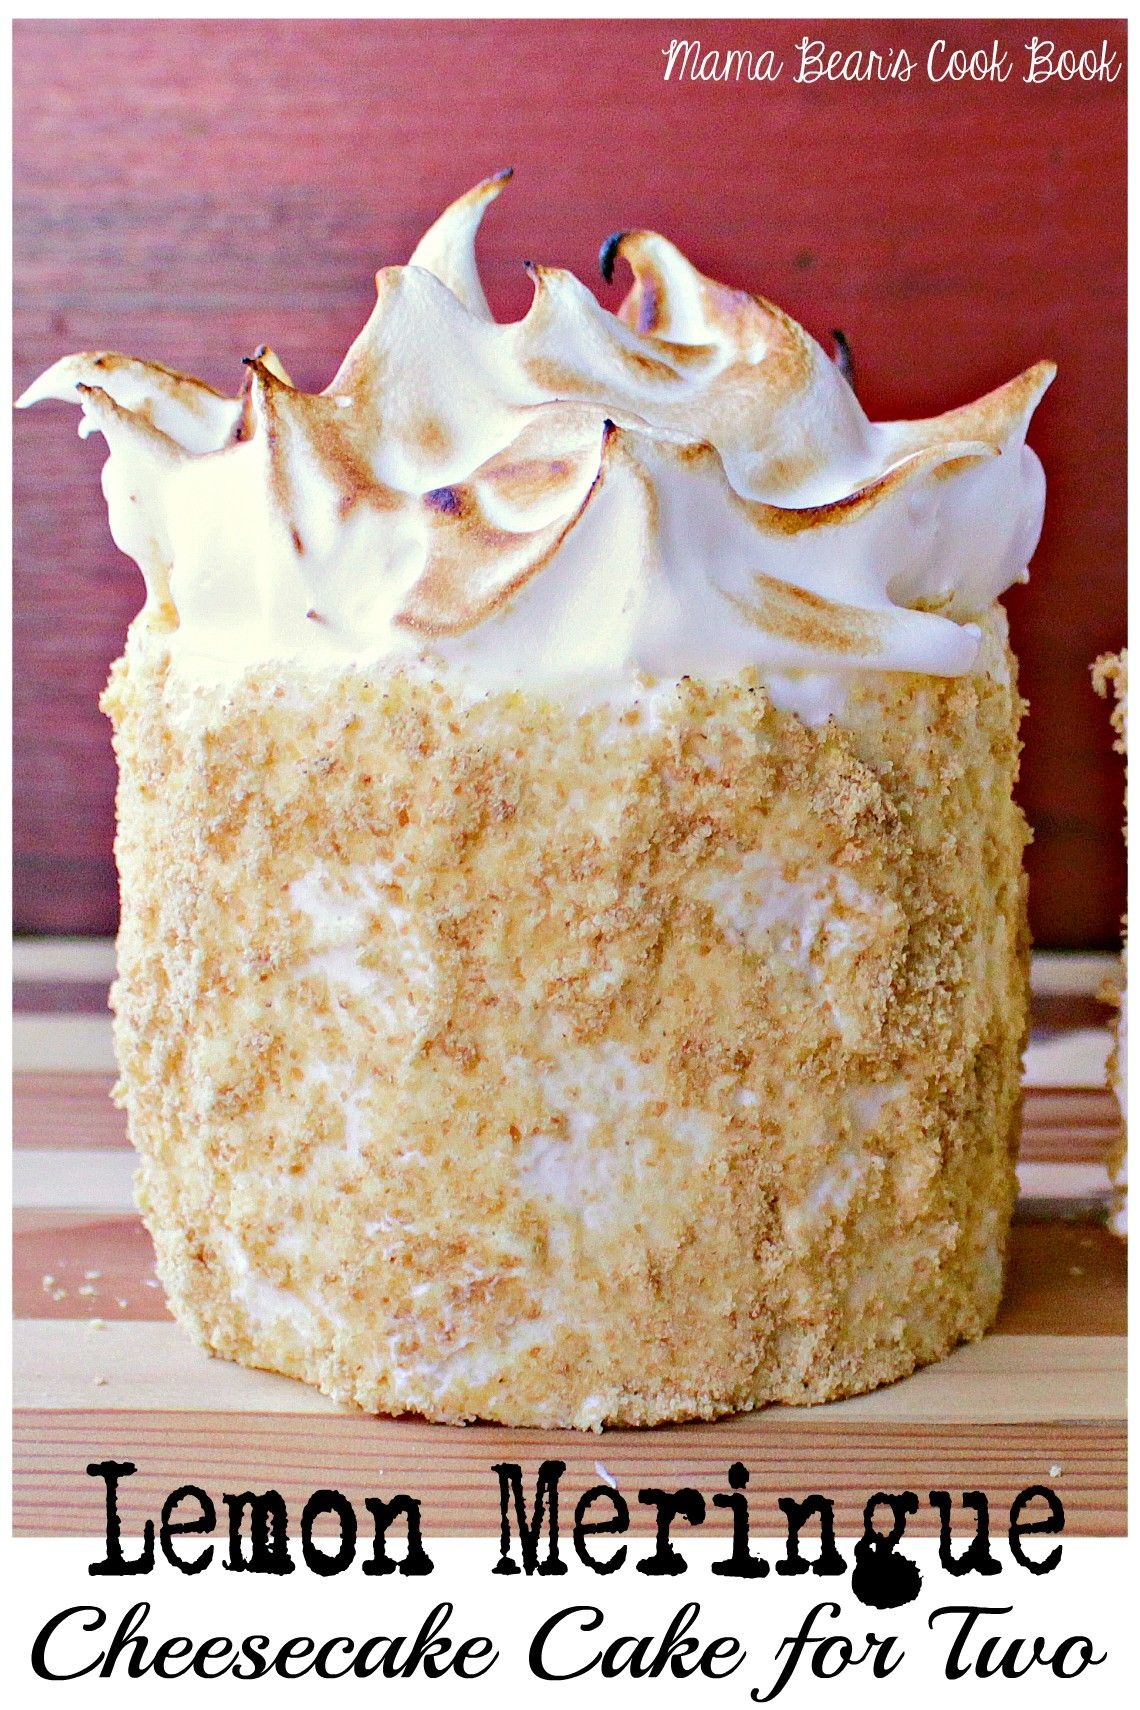 Lemon Meringue Cheesecake Cake for Two #lemonmeringuecheesecake